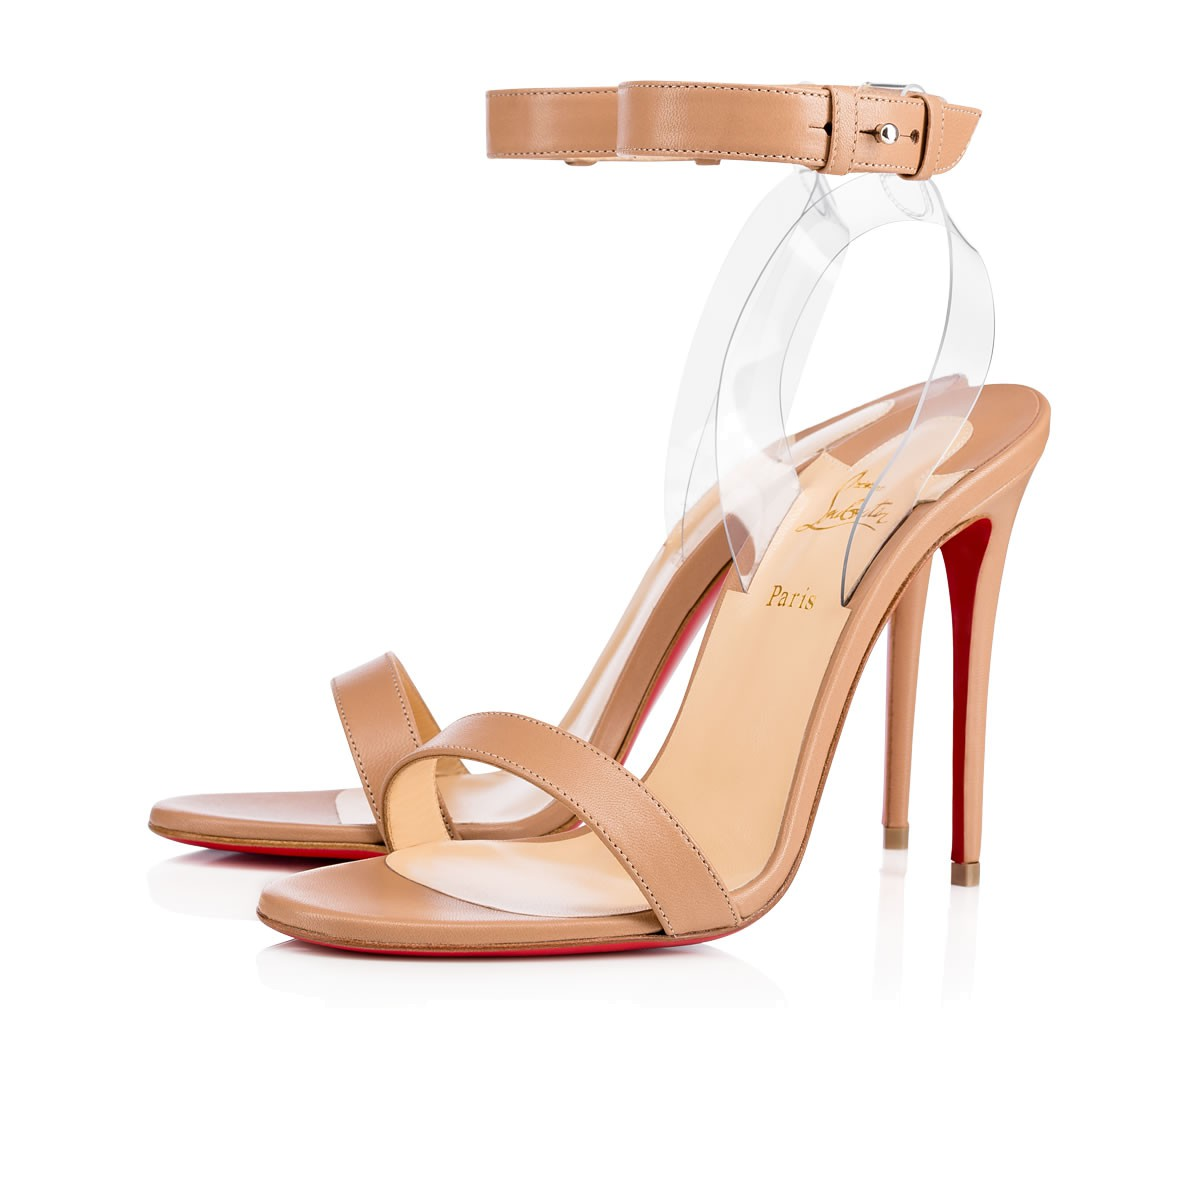 83480eeb82fd Christian Louboutin Jonatina Illusion Ankle-Strap Red Sole Sandals ...